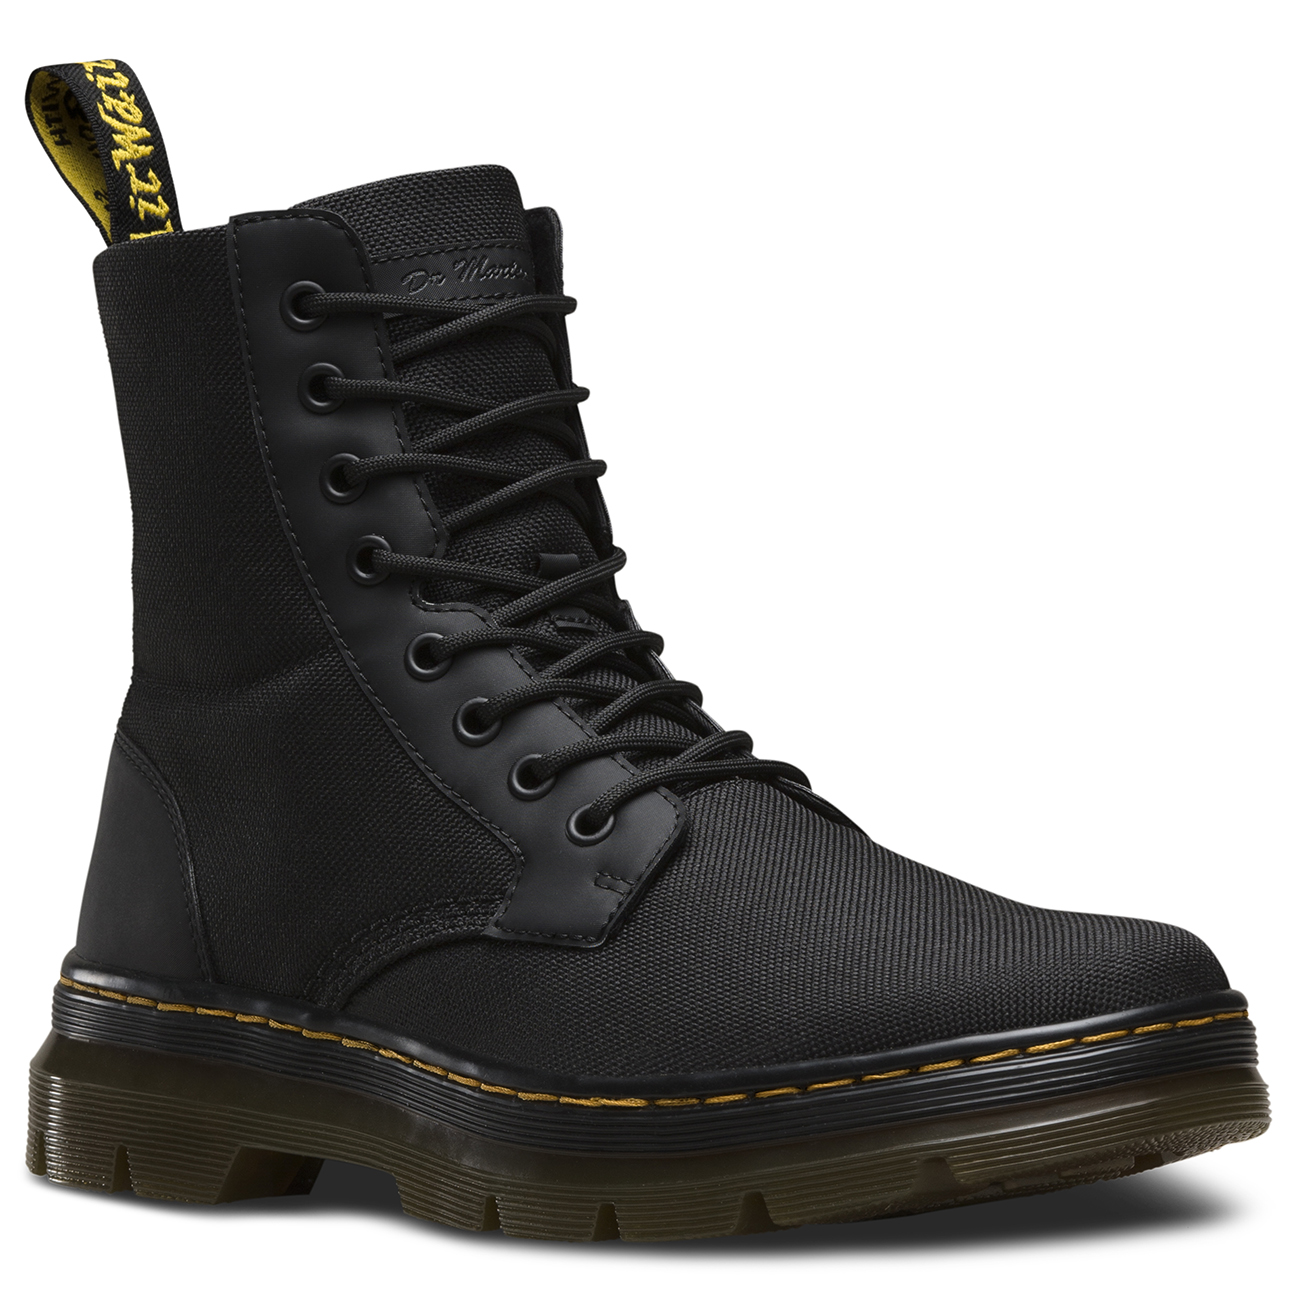 Unisex Adults Dr Martens Combs Nylon